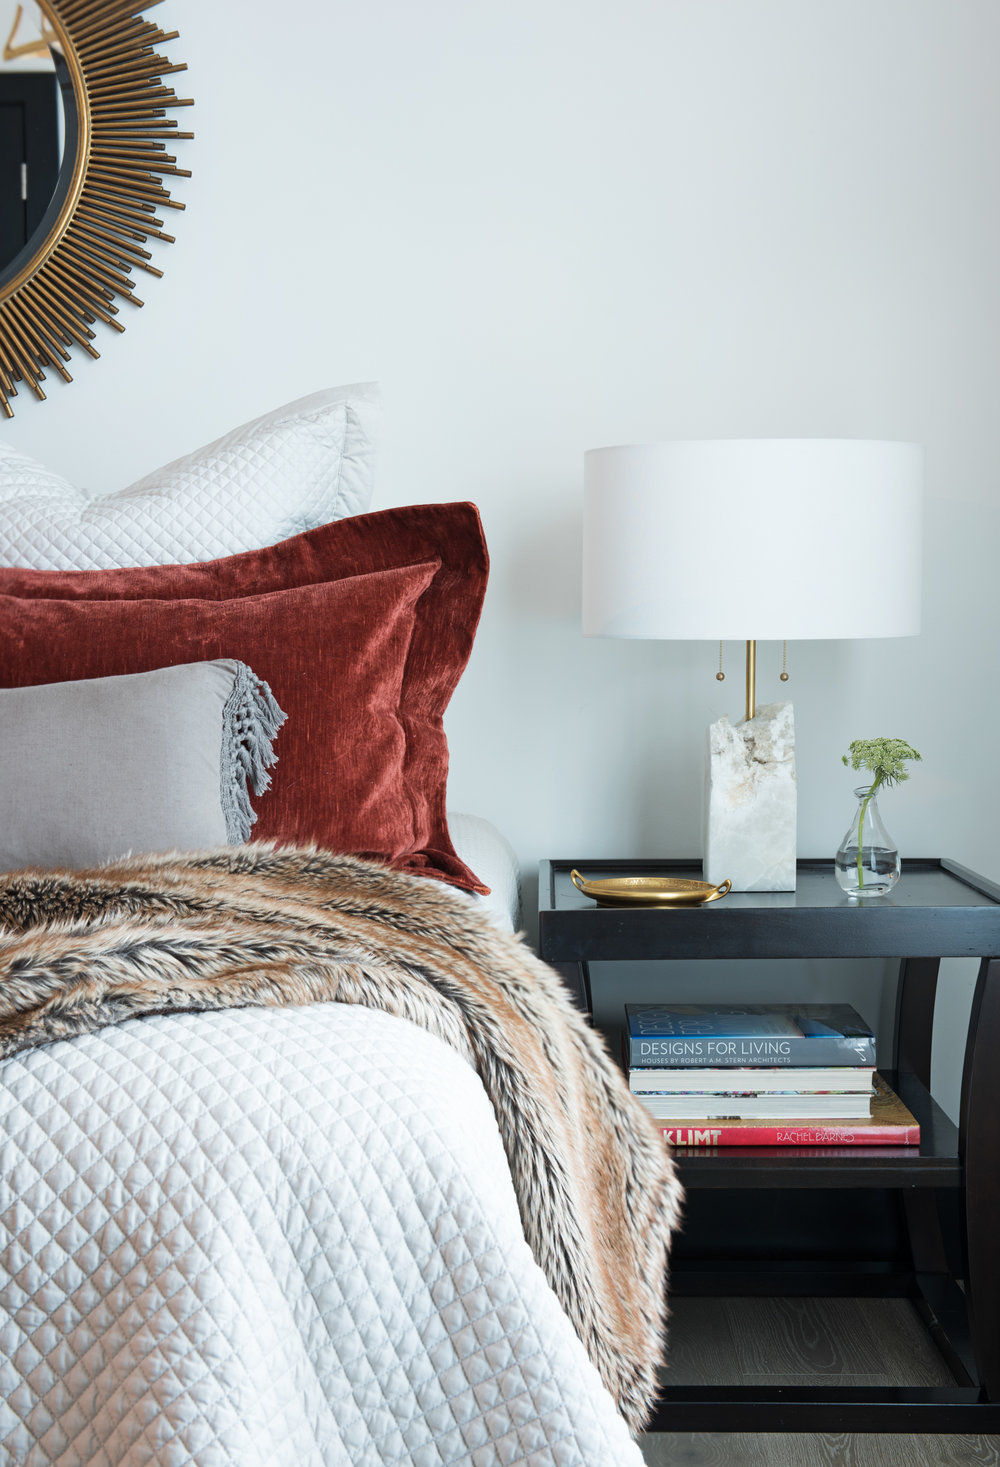 This gorgeous guest bedroom is just off the main living area. So lovely - the fur blanket is a really nice touch!